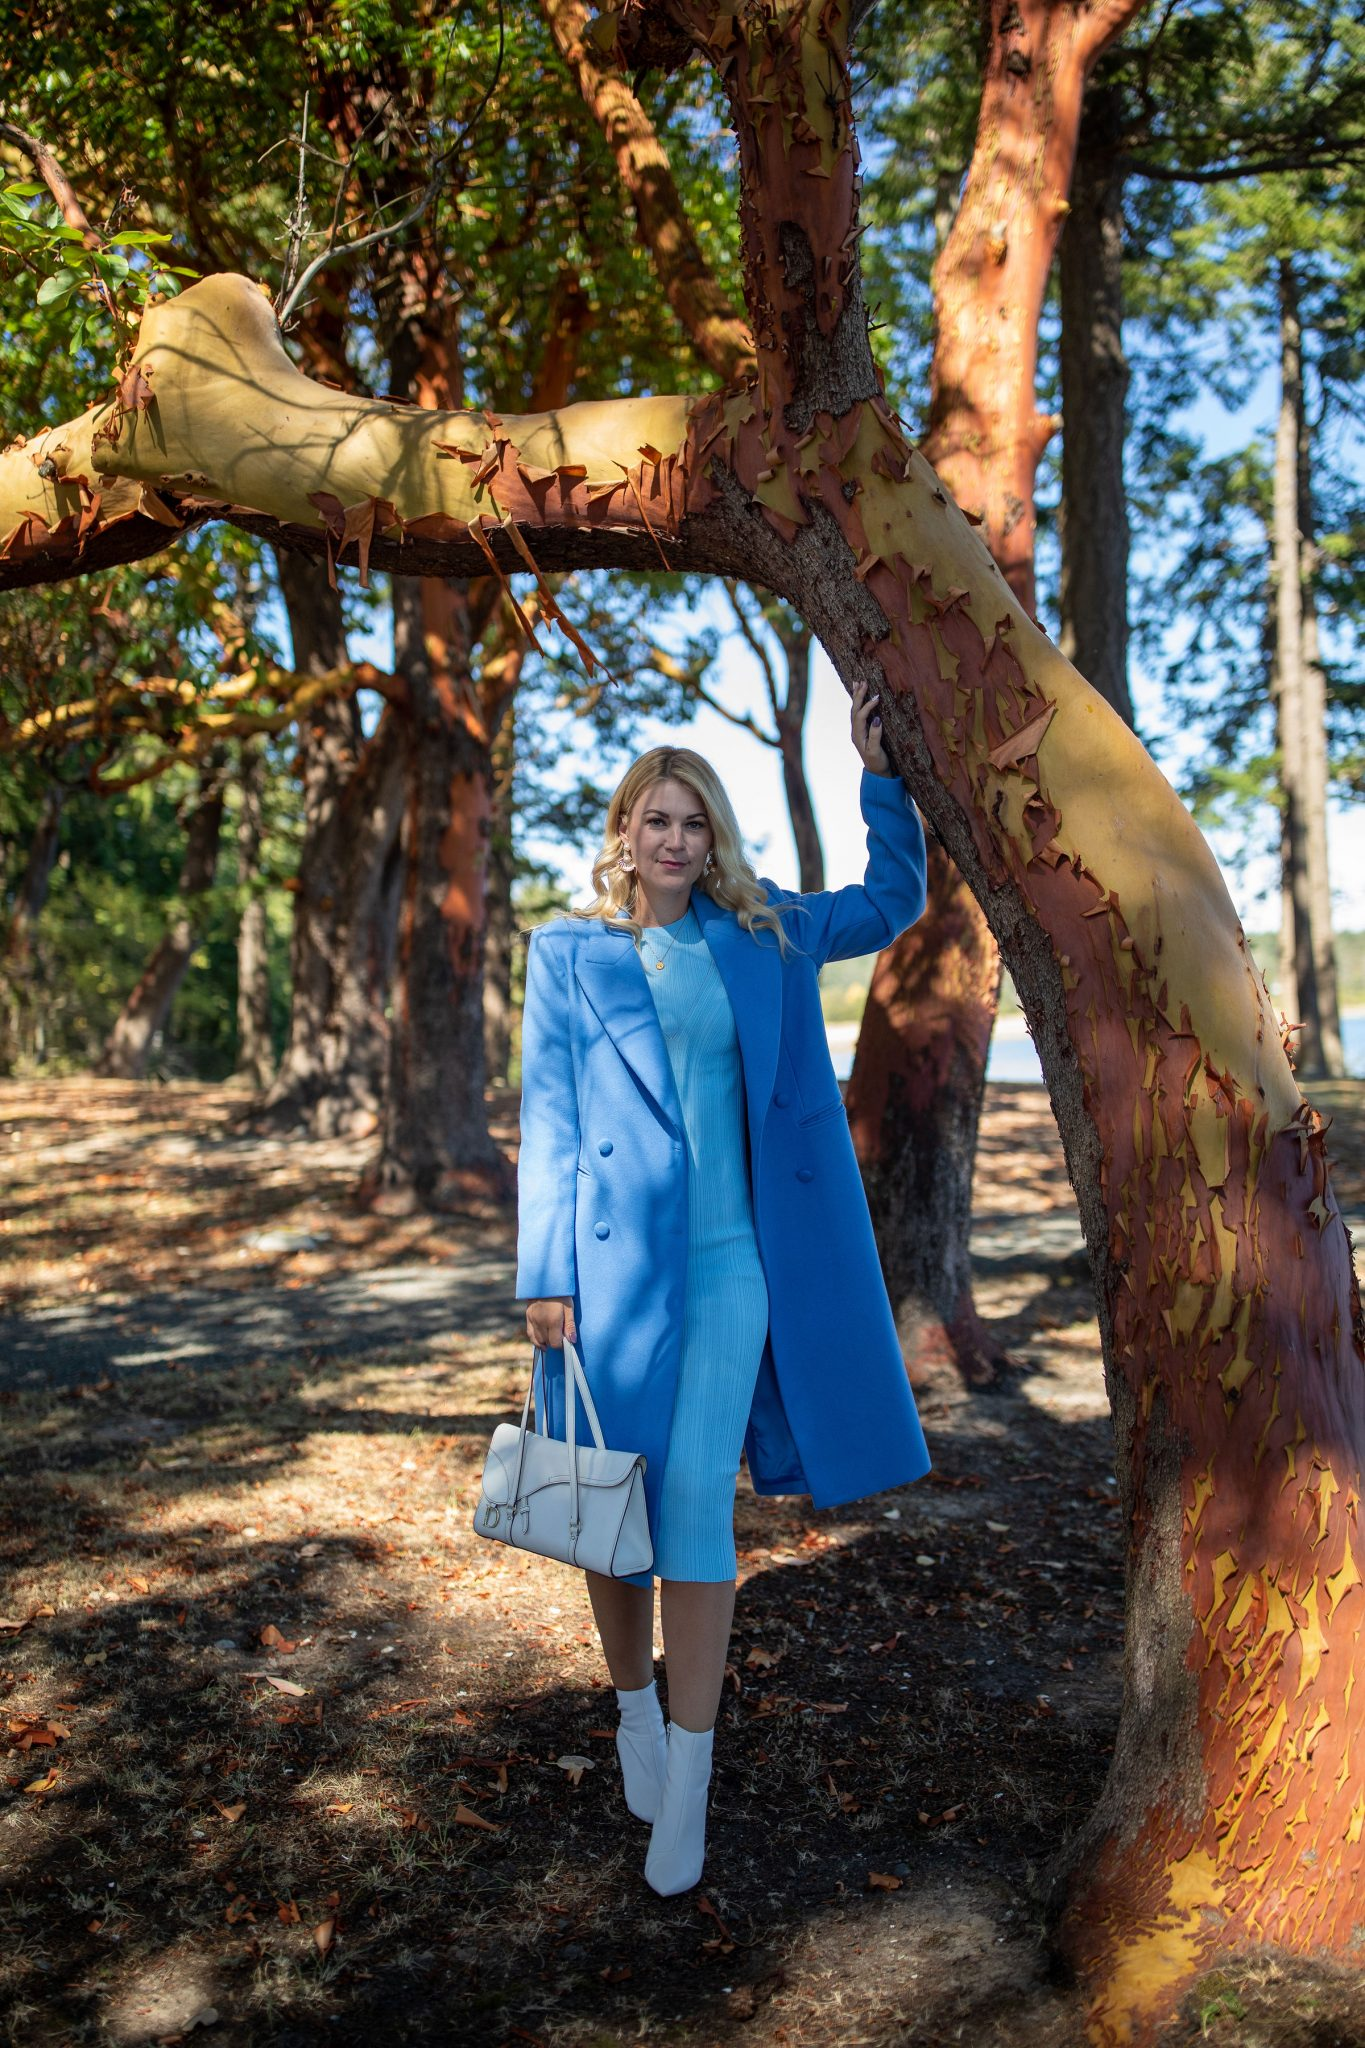 Wool Coat by Seattle tall fashion blog, Whit Wanders: image of a woman standing by a tree and wearing a  Ave Les Fille Wool Coat via Nordstrom, Zara Bodycon Dress, Booties by Guess, and holding a Dior Purse.